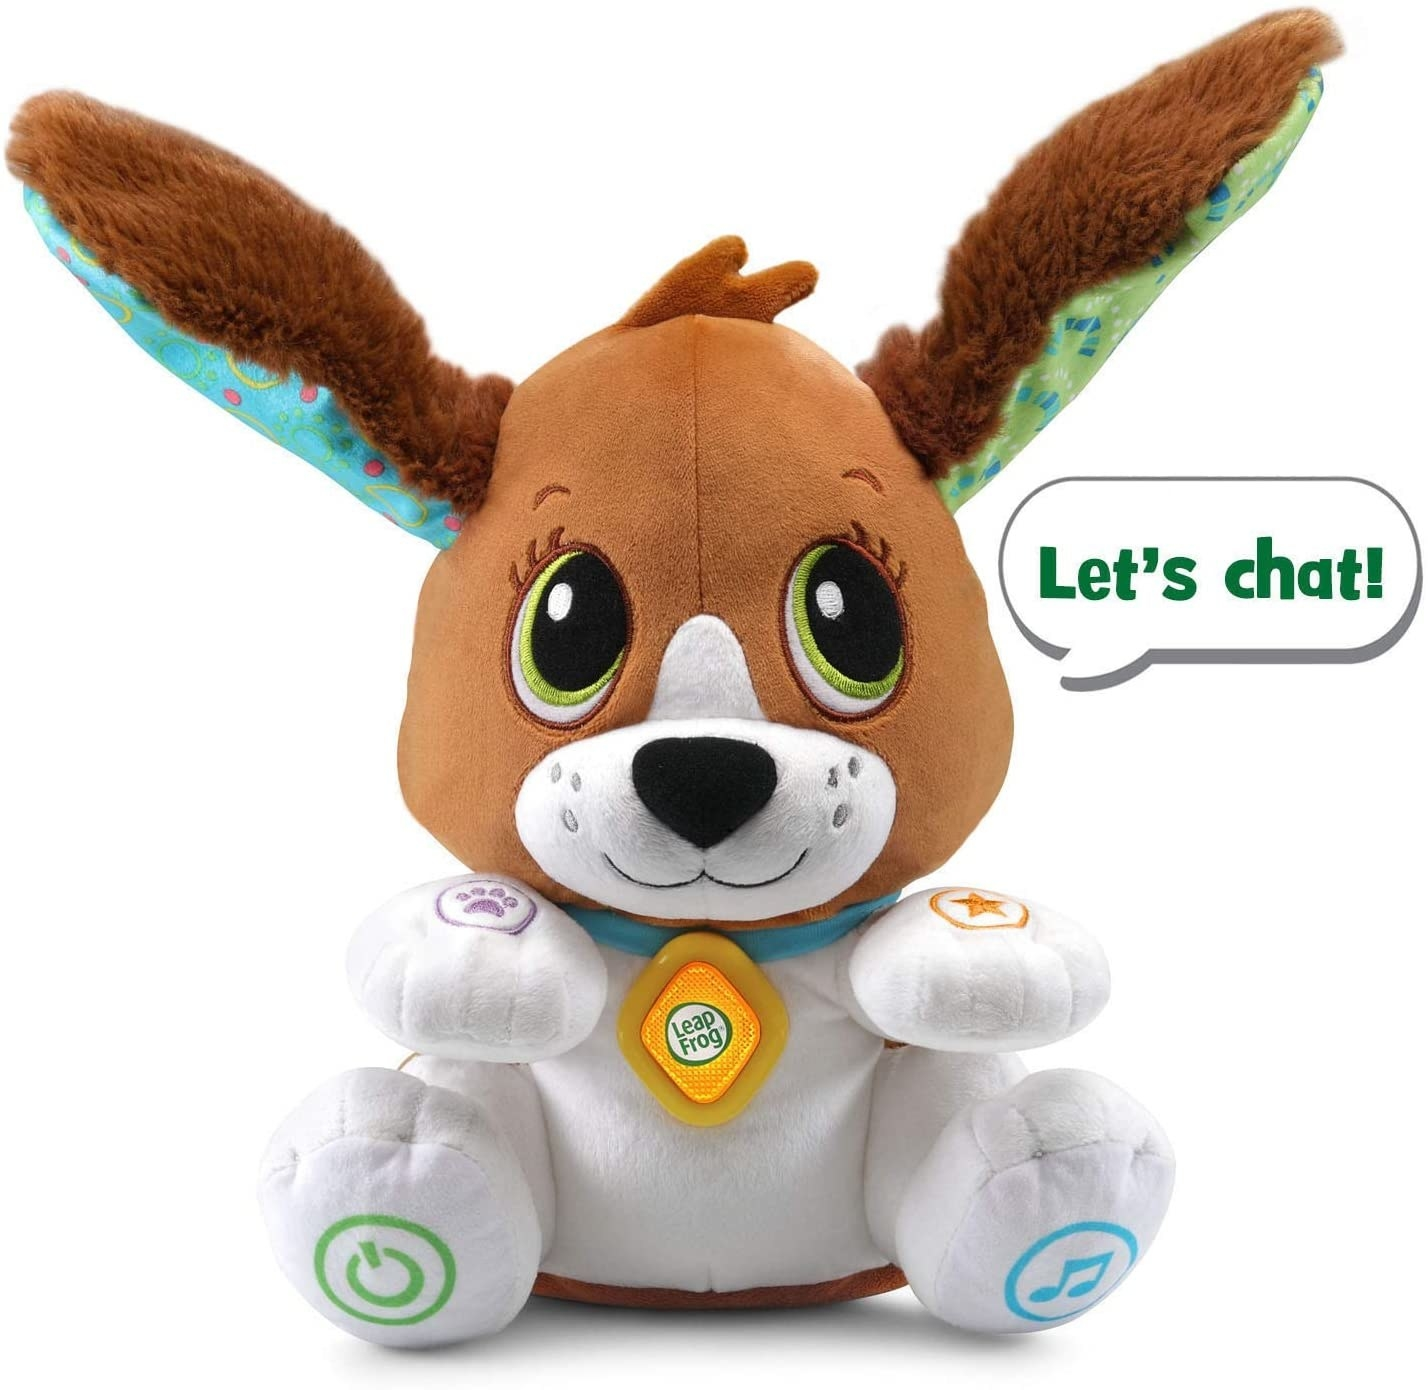 The Leapfrog speak and learn puppy